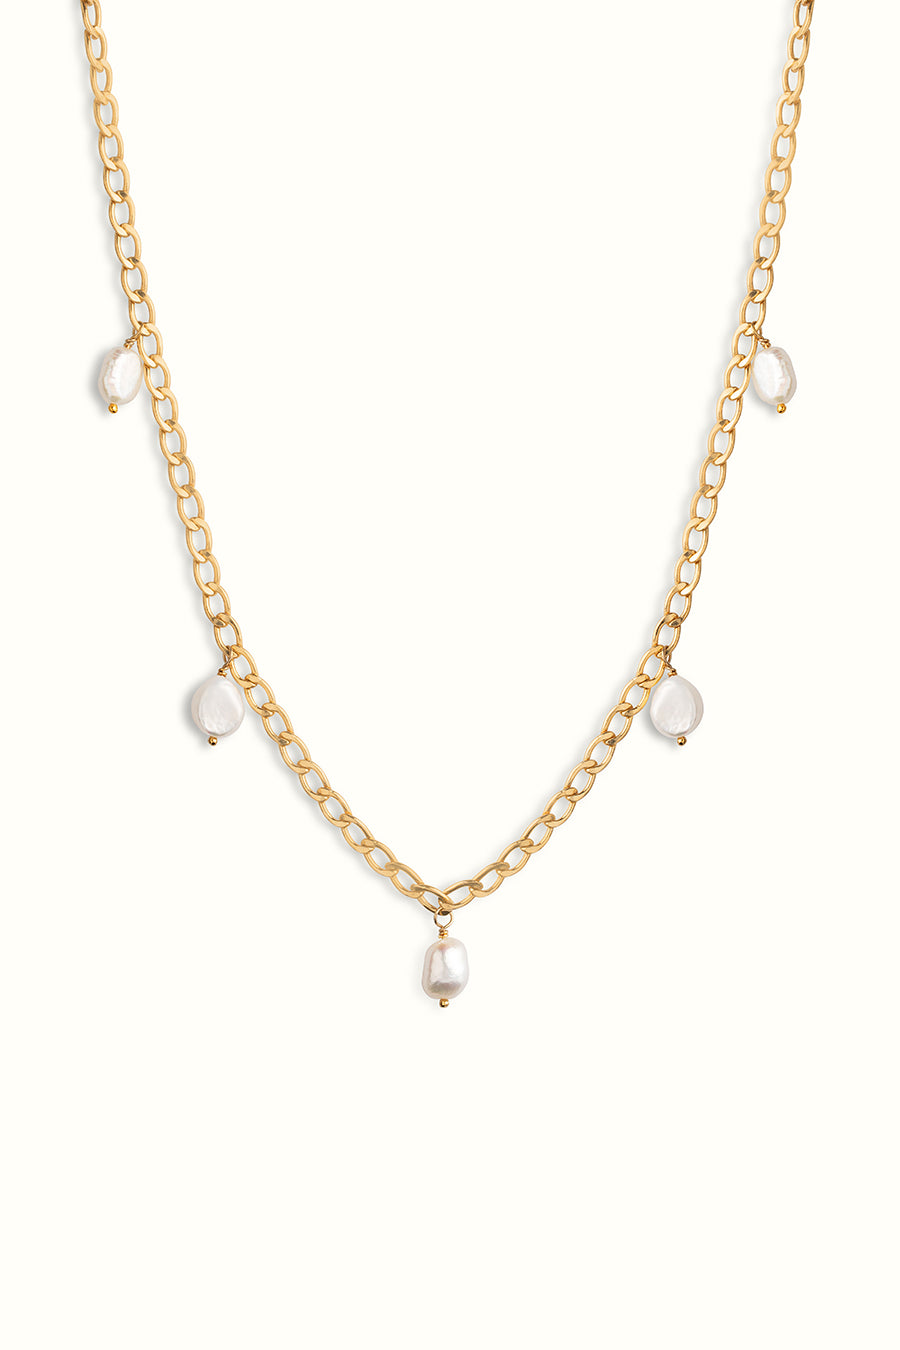 gold filled curb chain necklace with multiple pearl drops on a white background